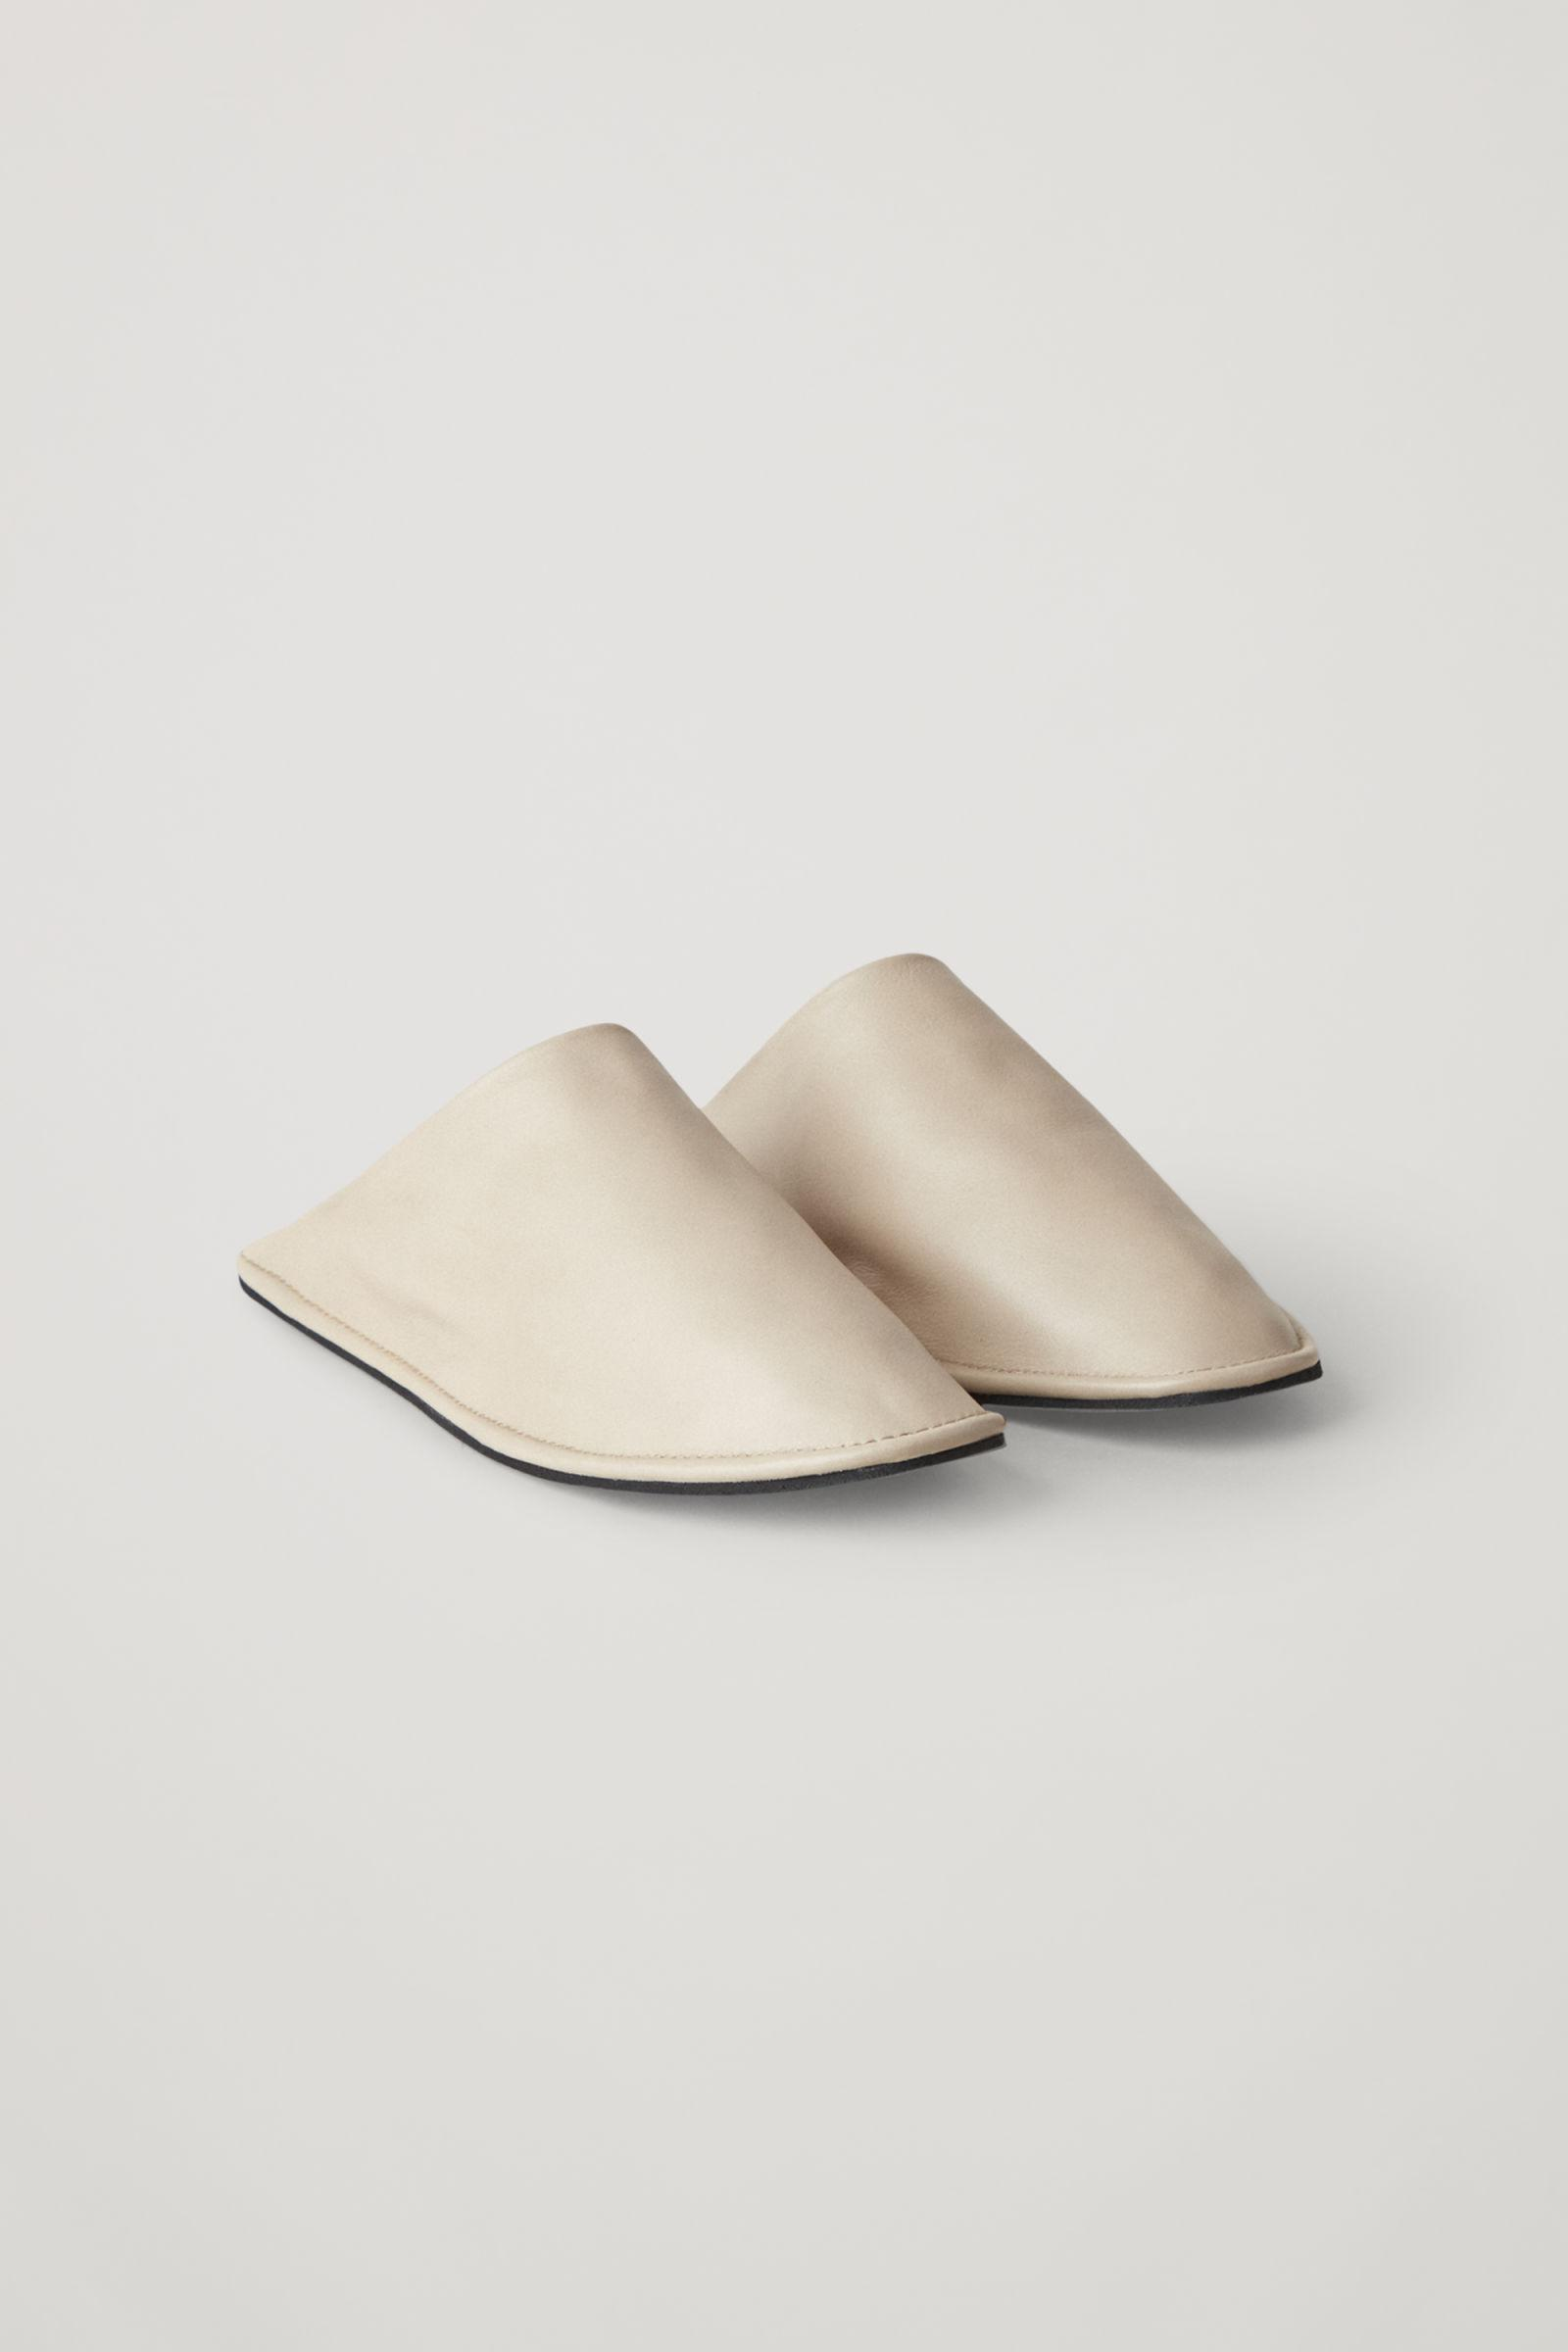 LINED LEATHER SLIPPERS